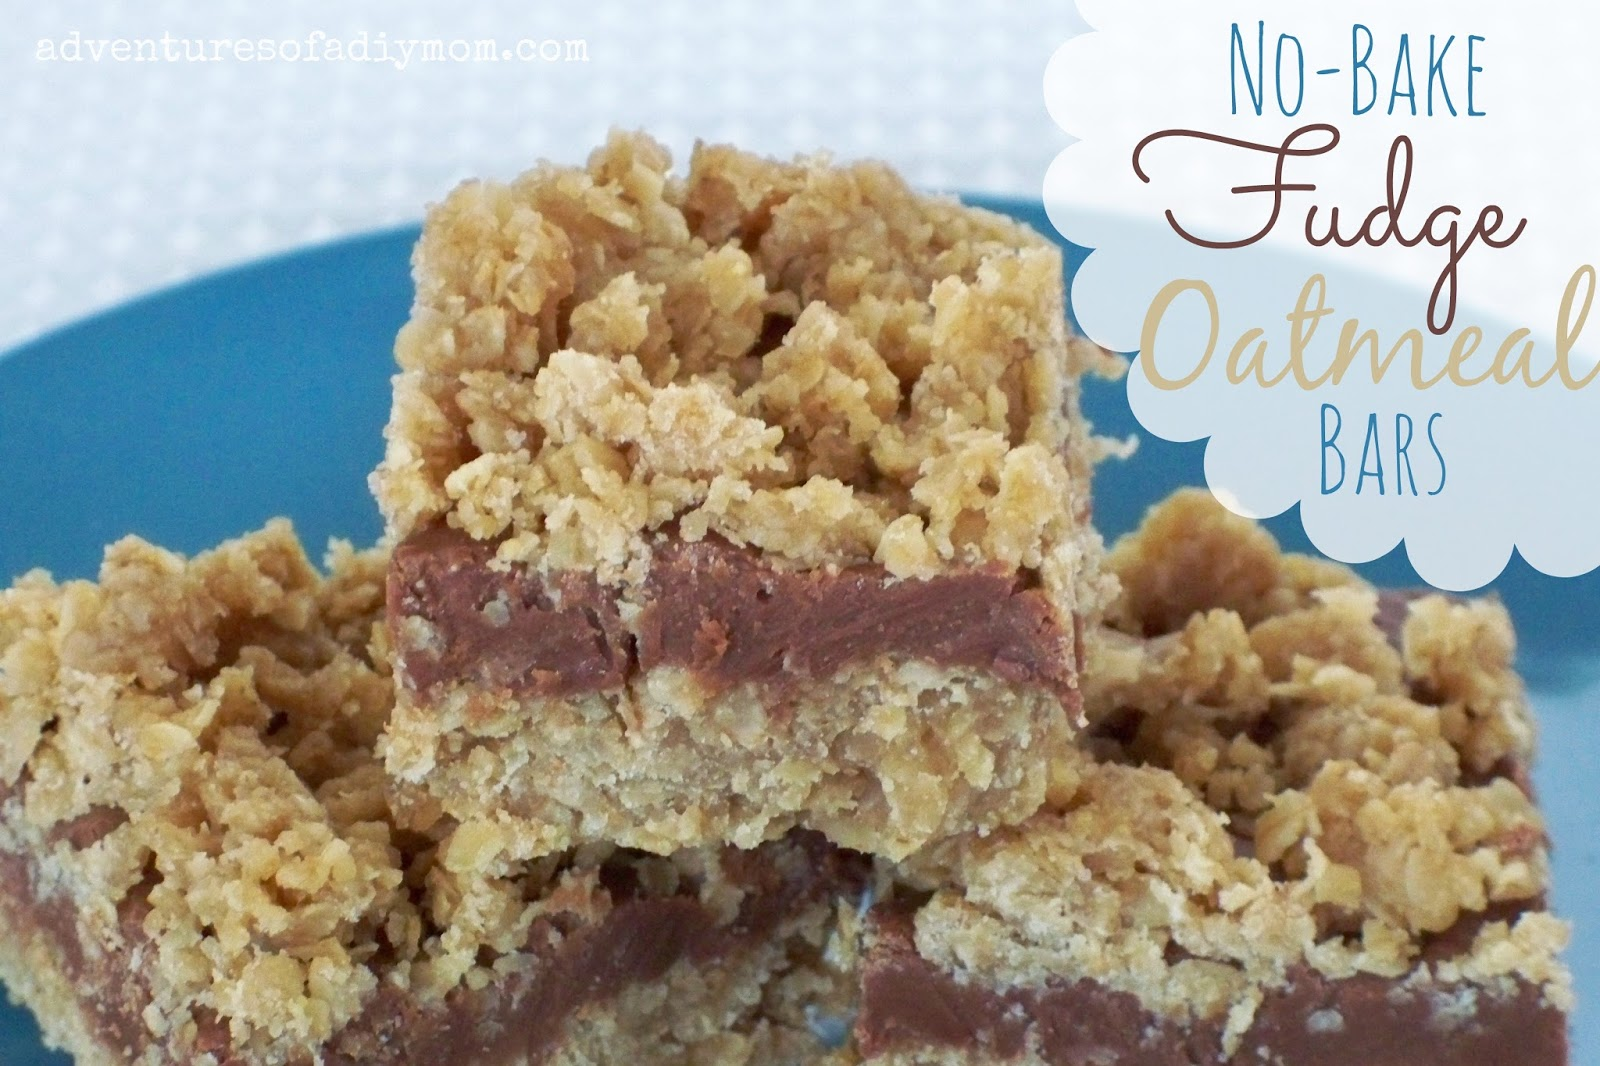 No-Bake Fudge Oatmeal Bars Recipe